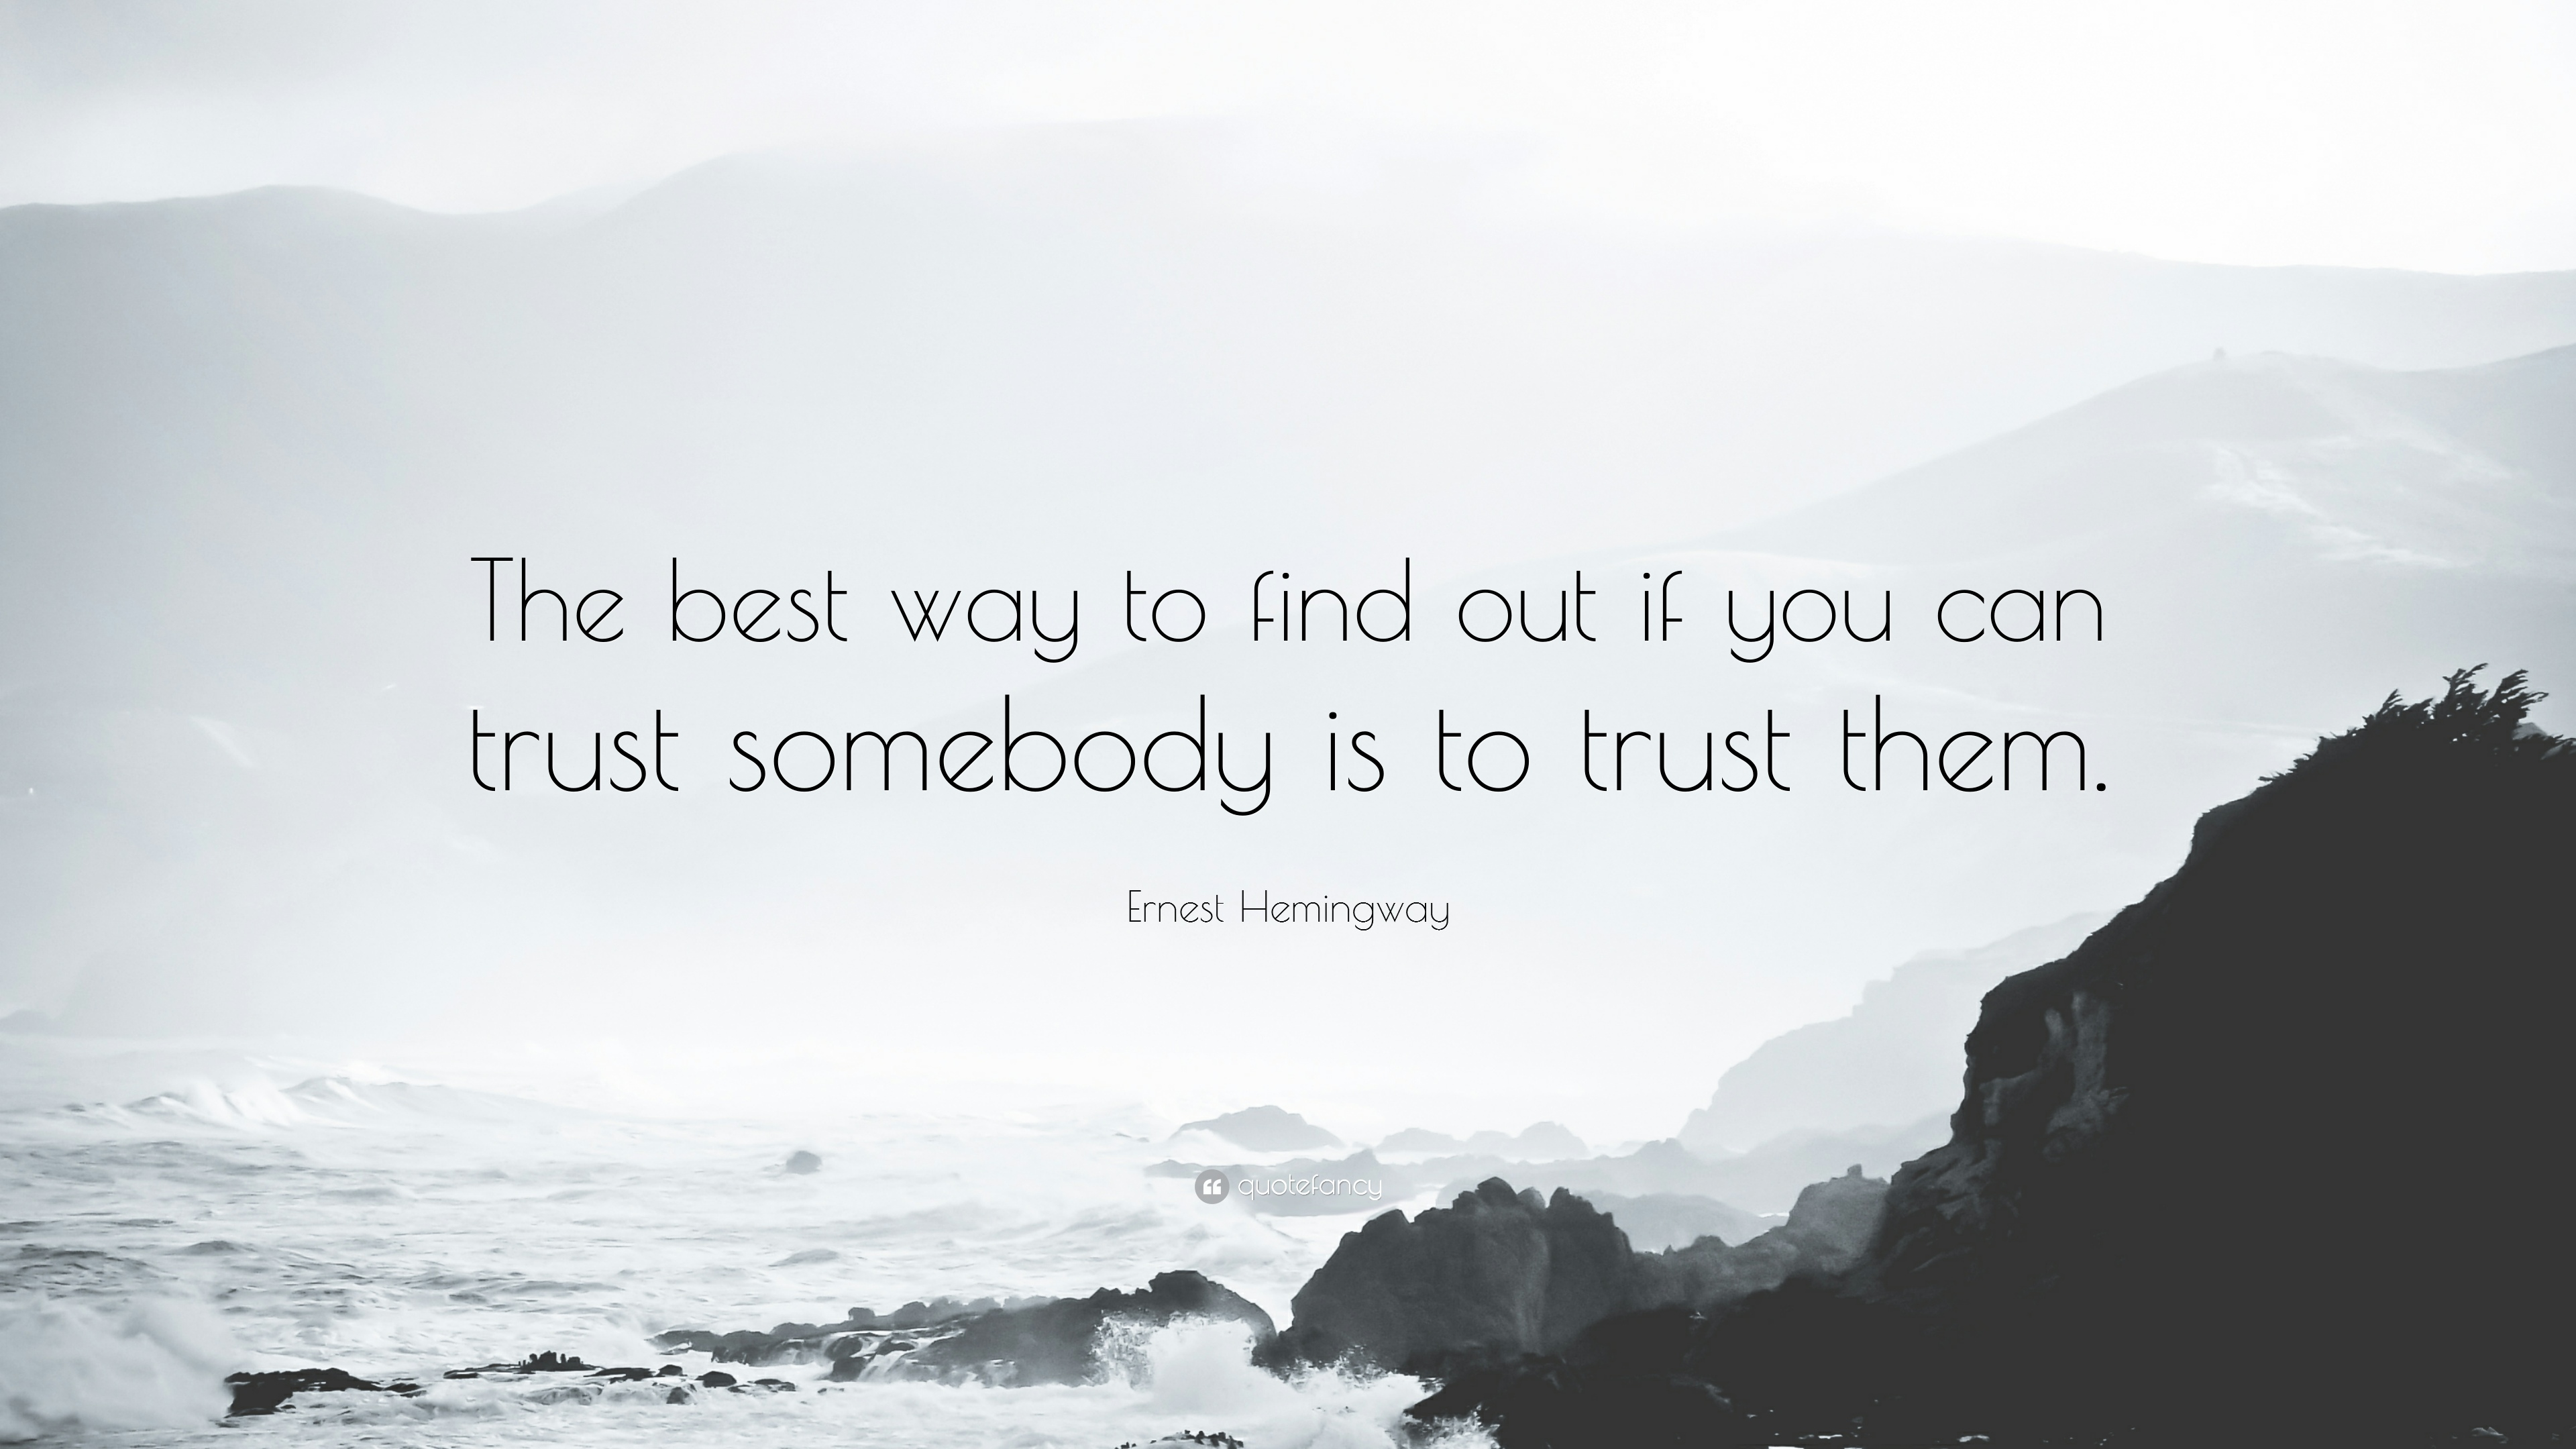 Relationship Quotes: U201cThe Best Way To Find Out If You Can Trust Somebody Is